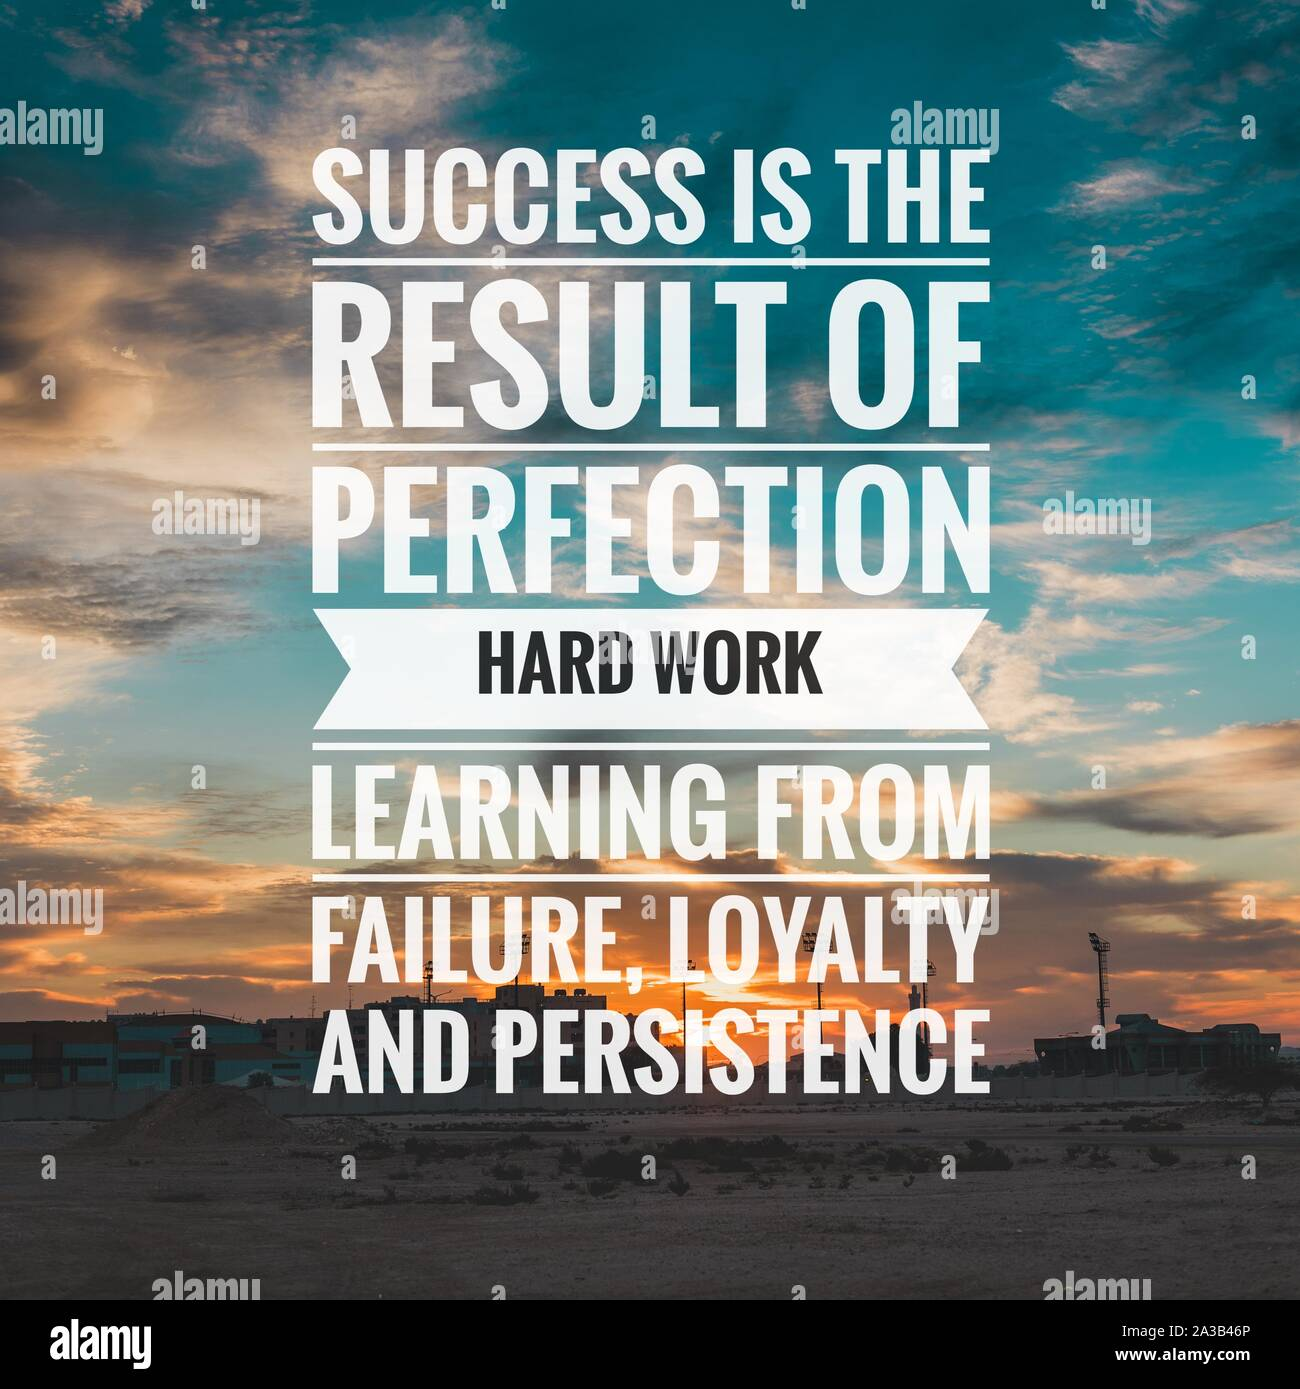 Motivational Quotes About Success And Hard Work With Images